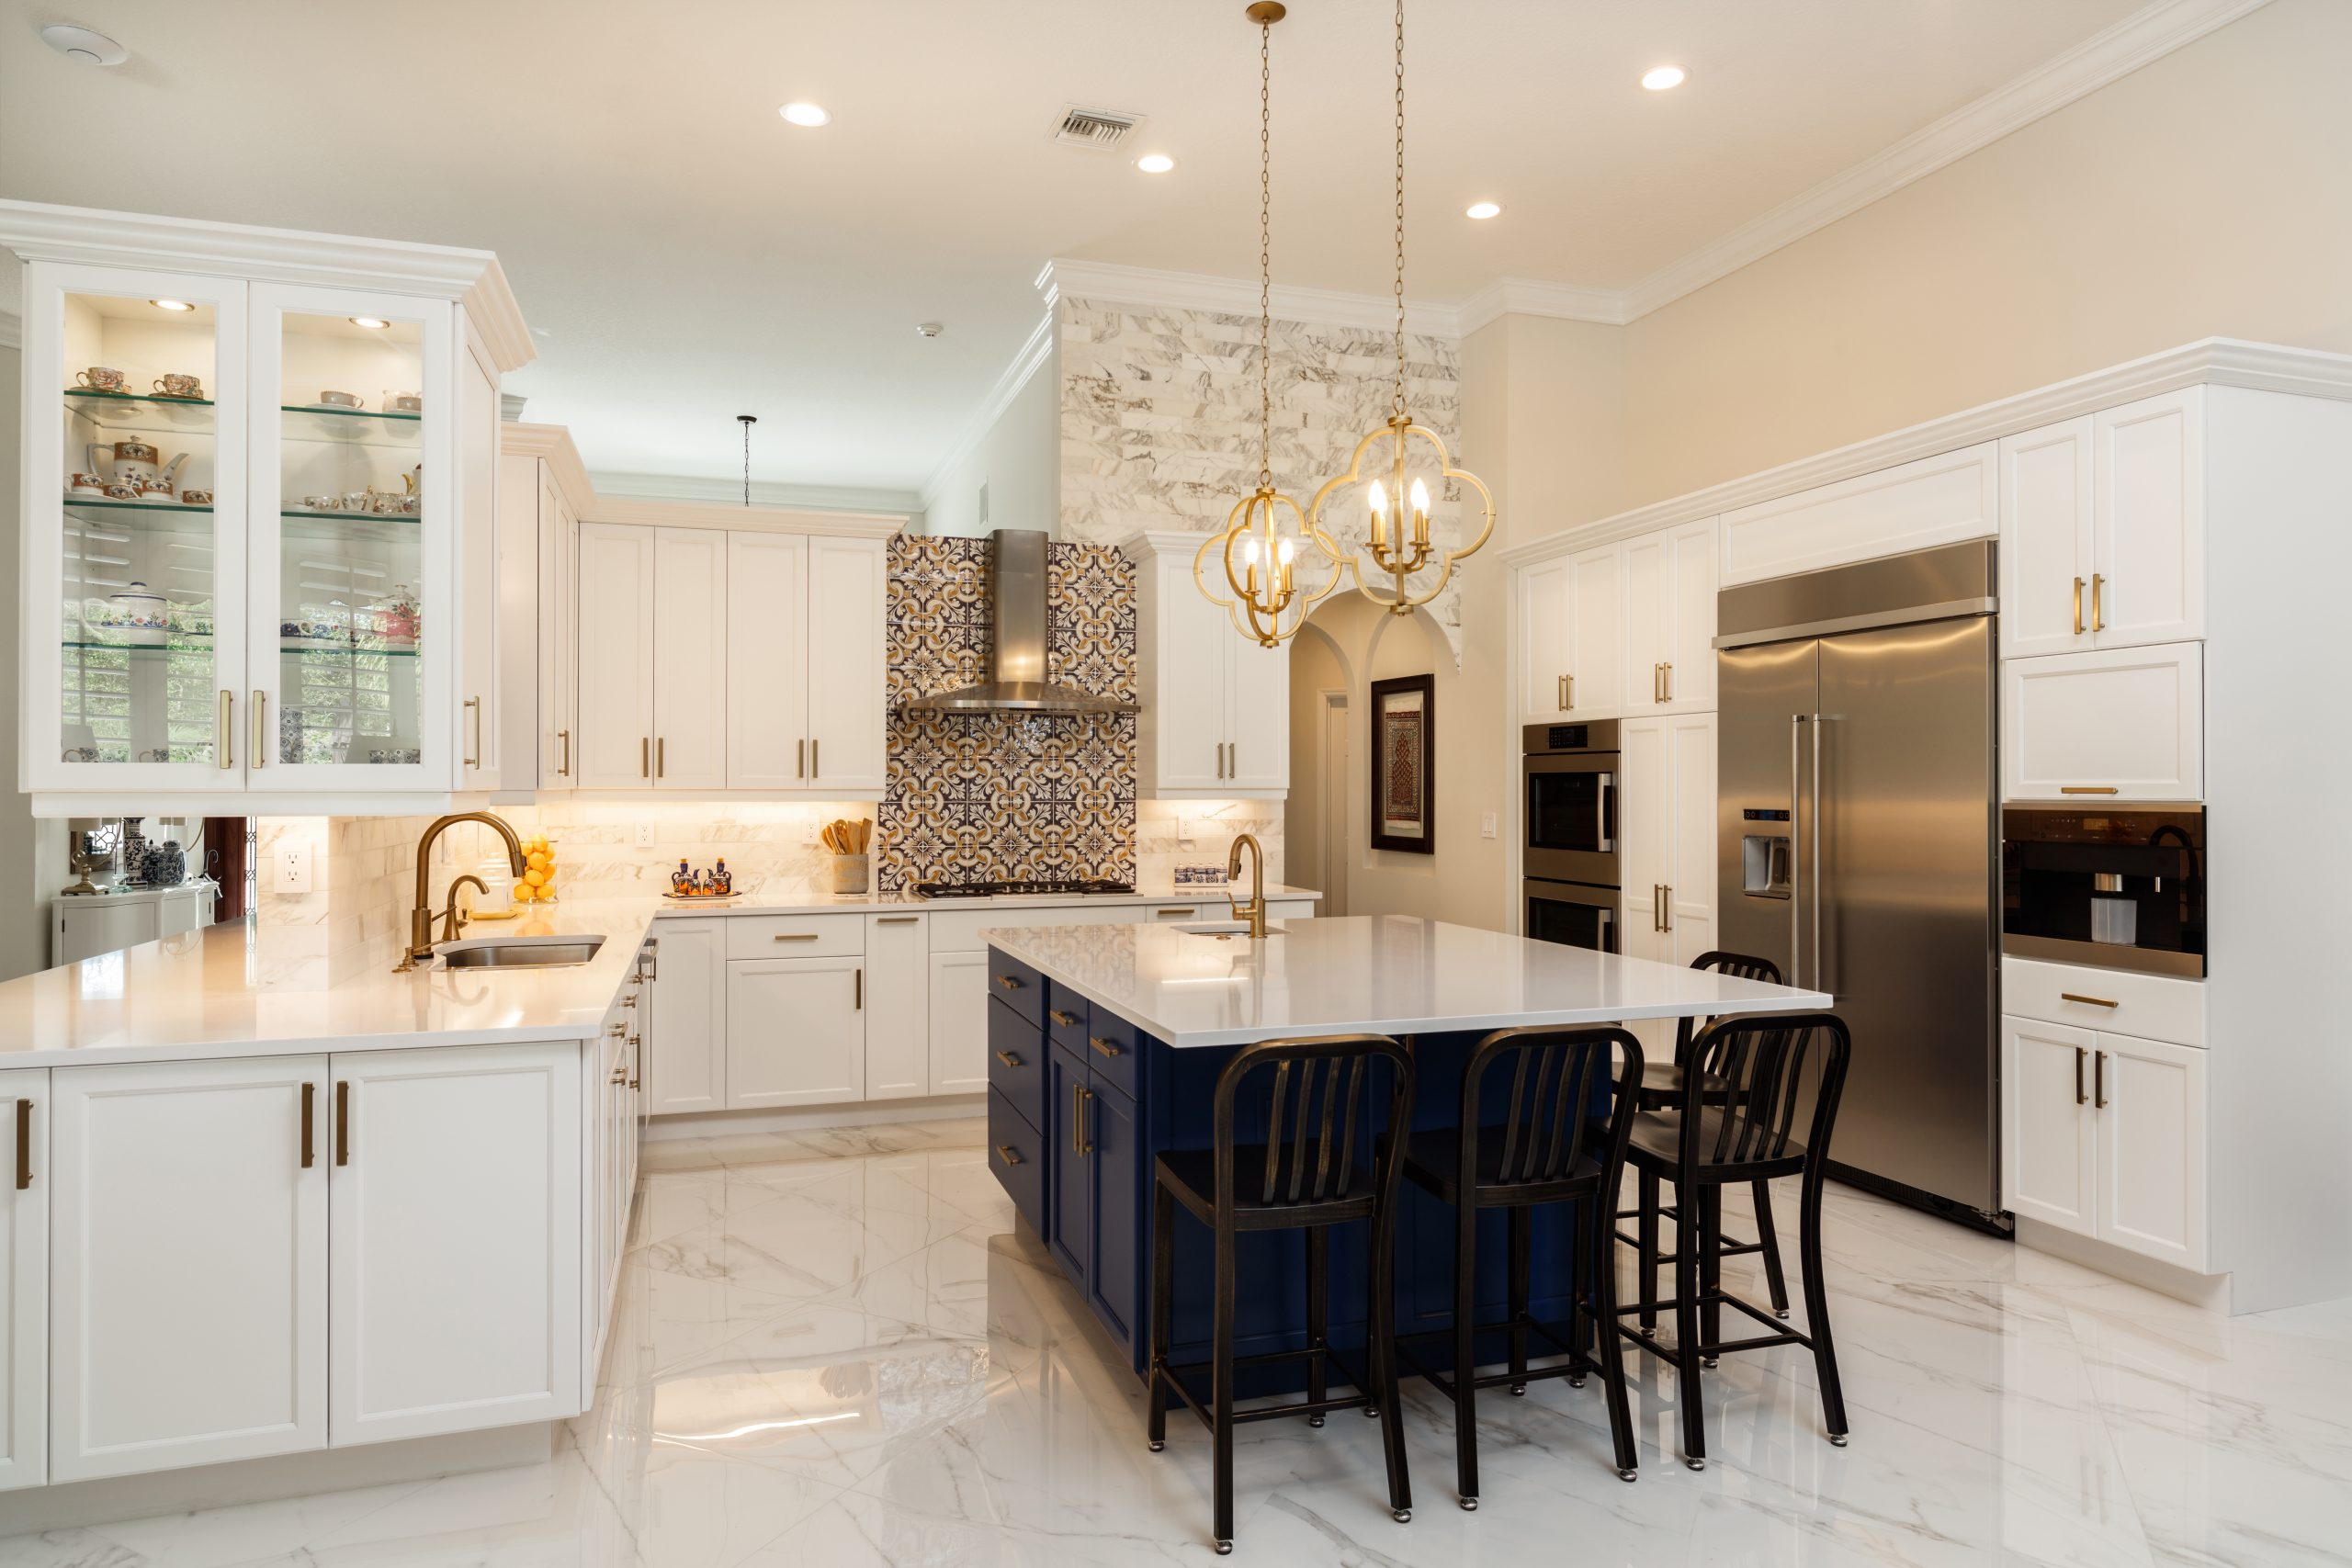 Beautiful,Luxury,Home,Kitchen,With,White,Cabinets.